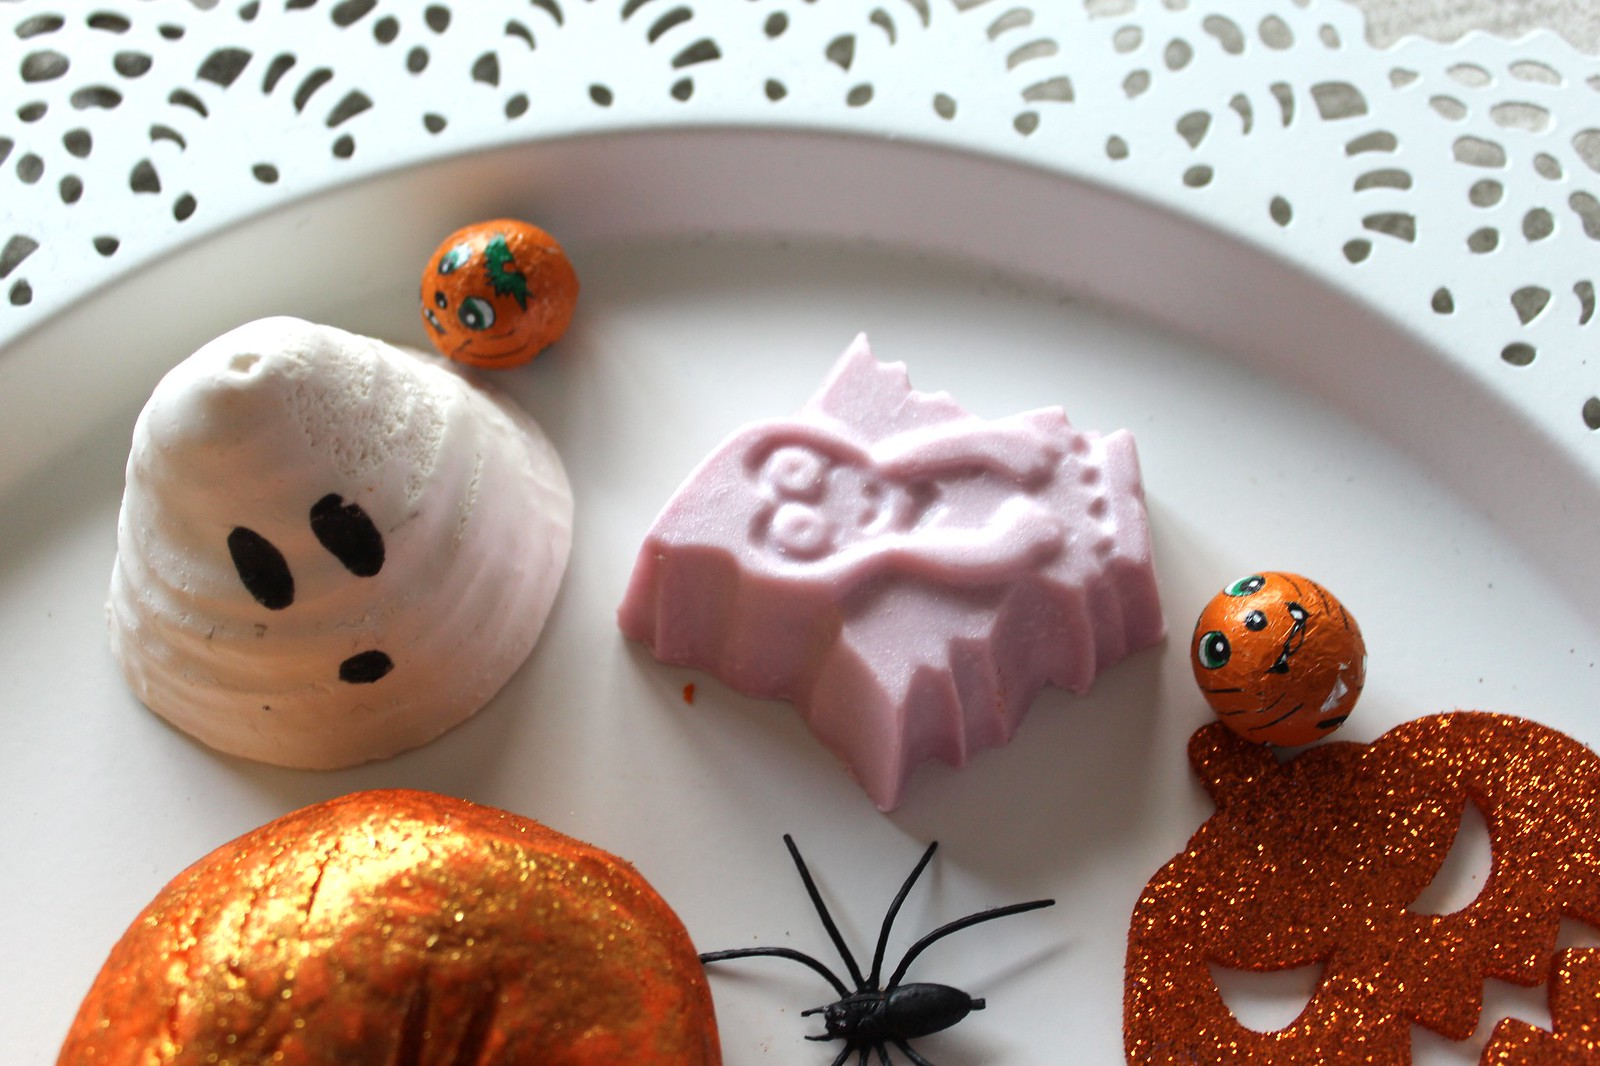 Lush Halloween Collection 2016